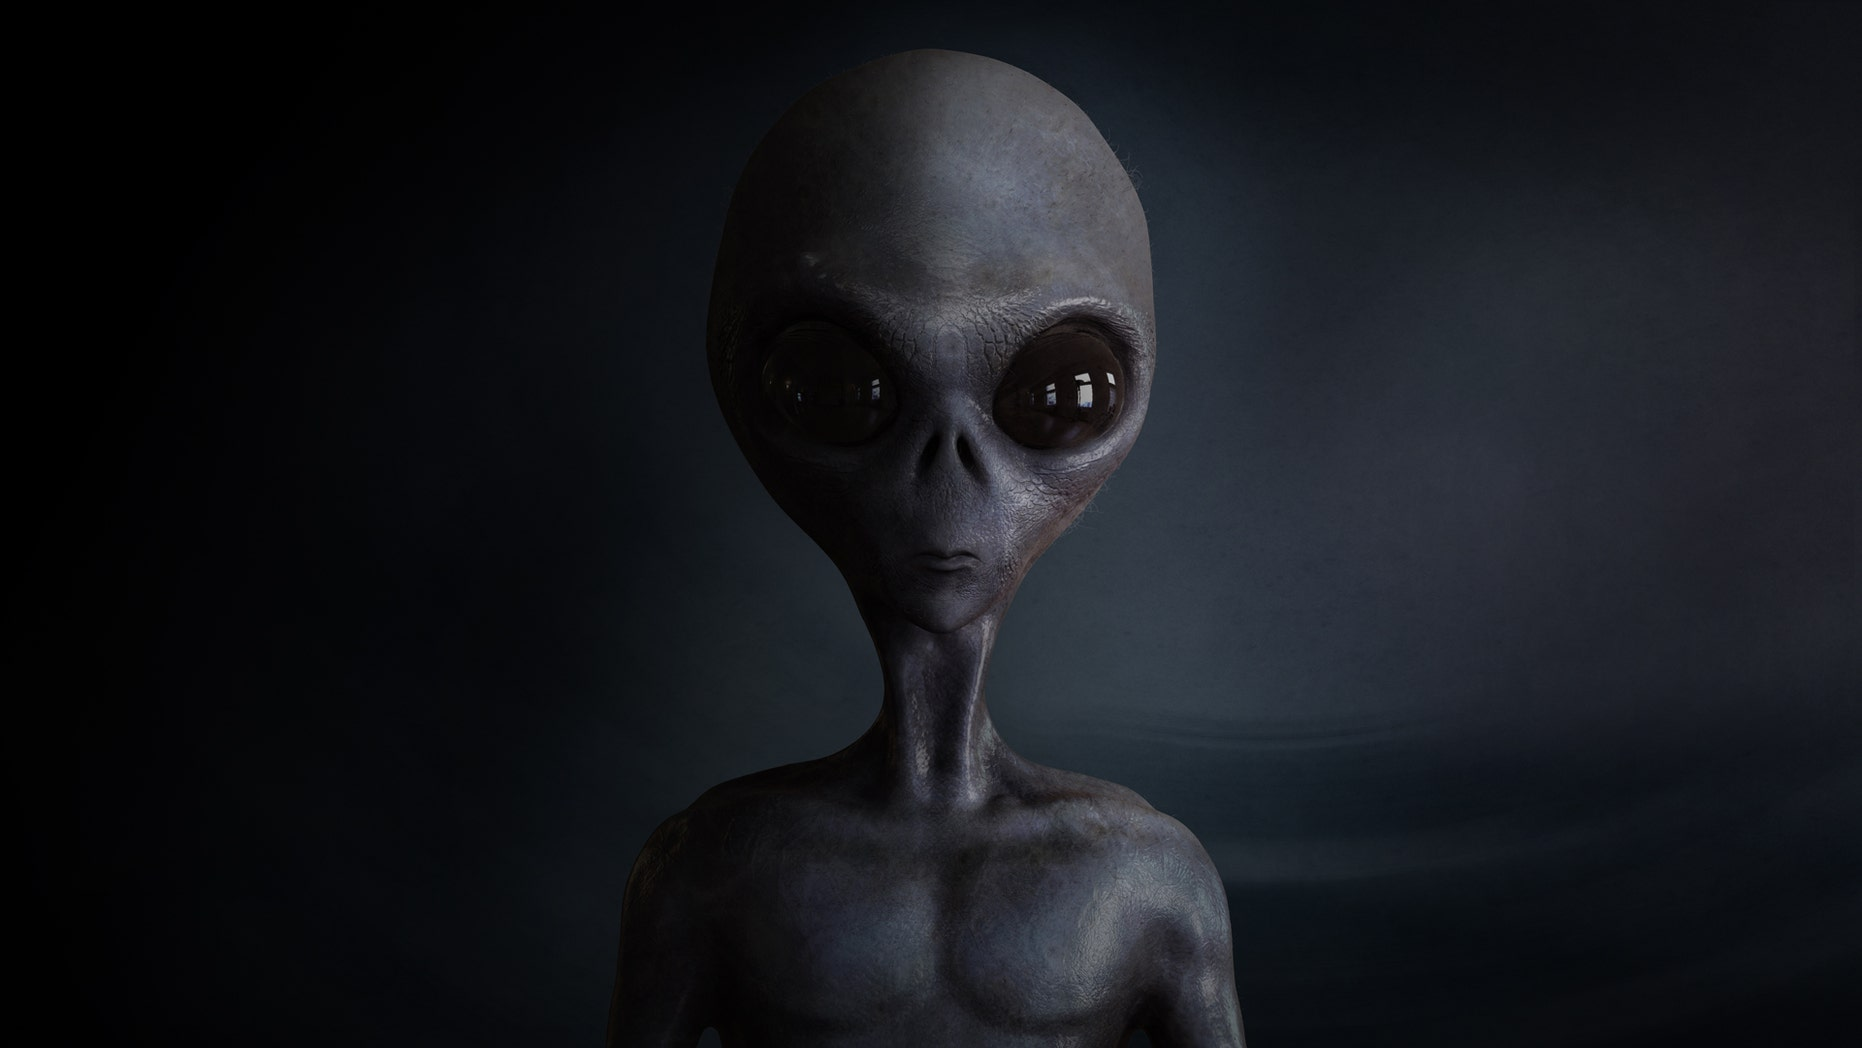 alien (This content is subject to copyright.) (Credit: iStock)